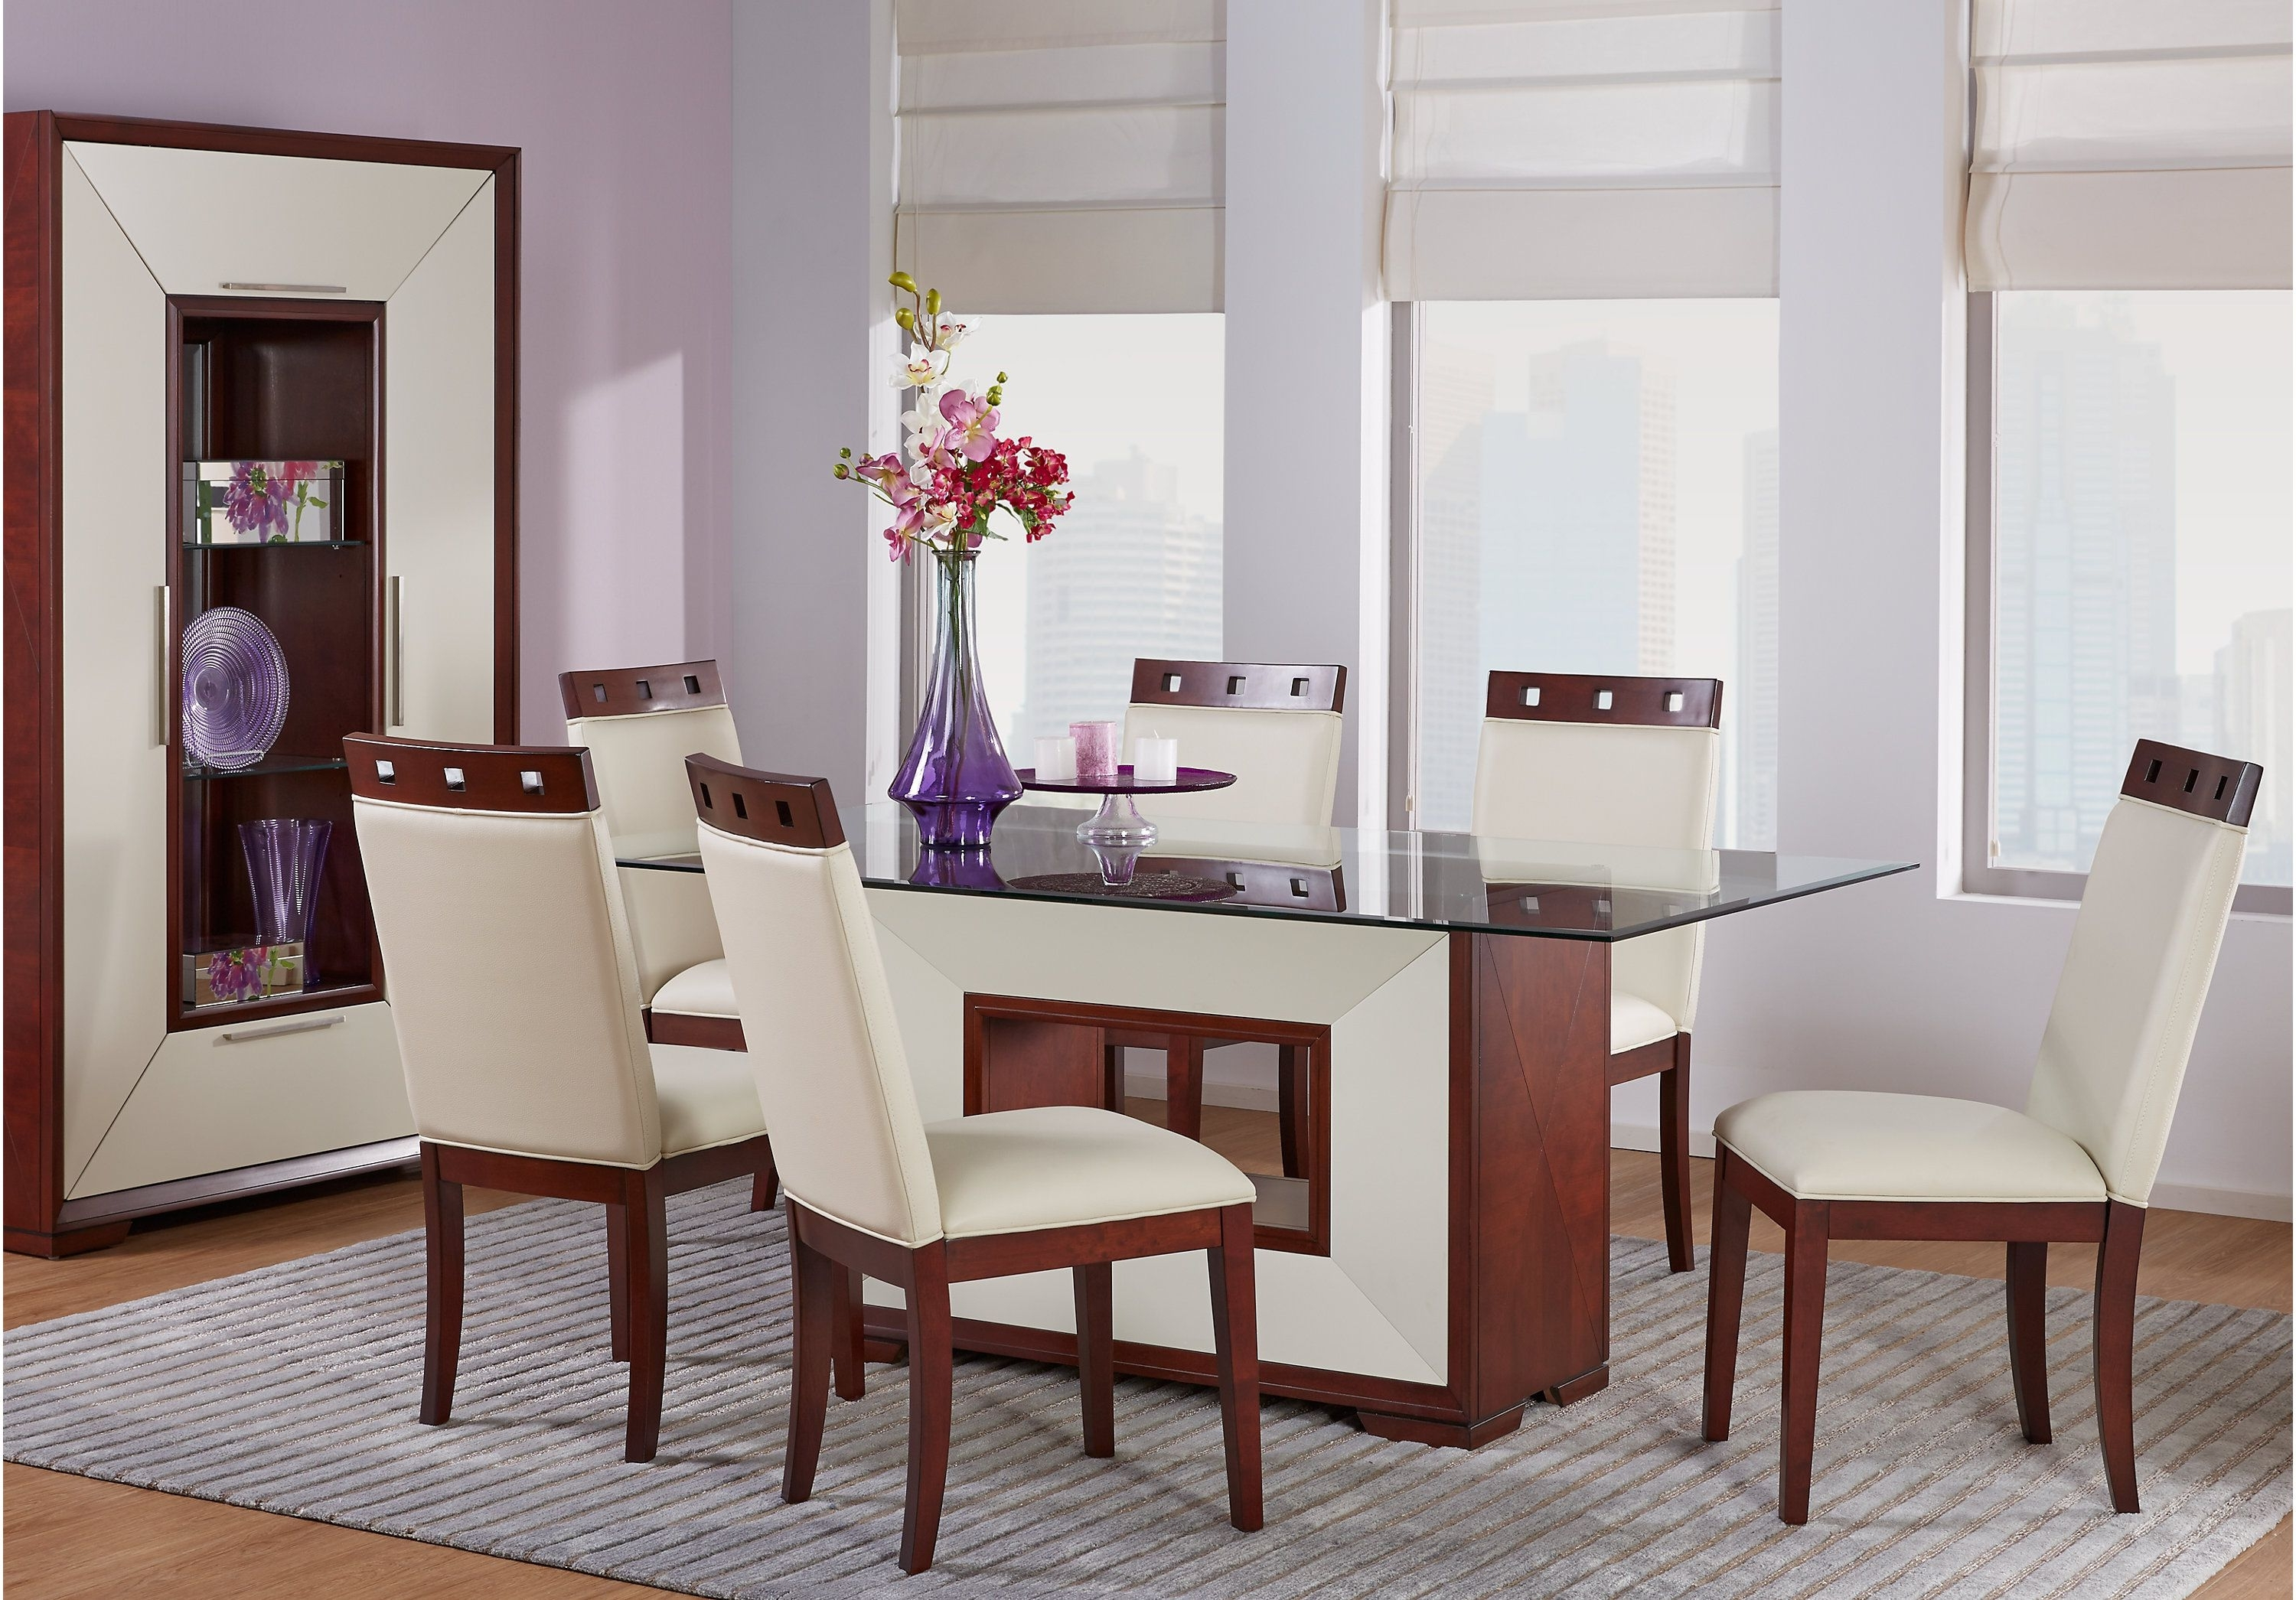 Well Liked Sofia Vergara Savona Ivory 5 Pc Rectangle Dining Room With Glass Top Regarding Palazzo 9 Piece Dining Sets With Pearson White Side Chairs (View 12 of 25)